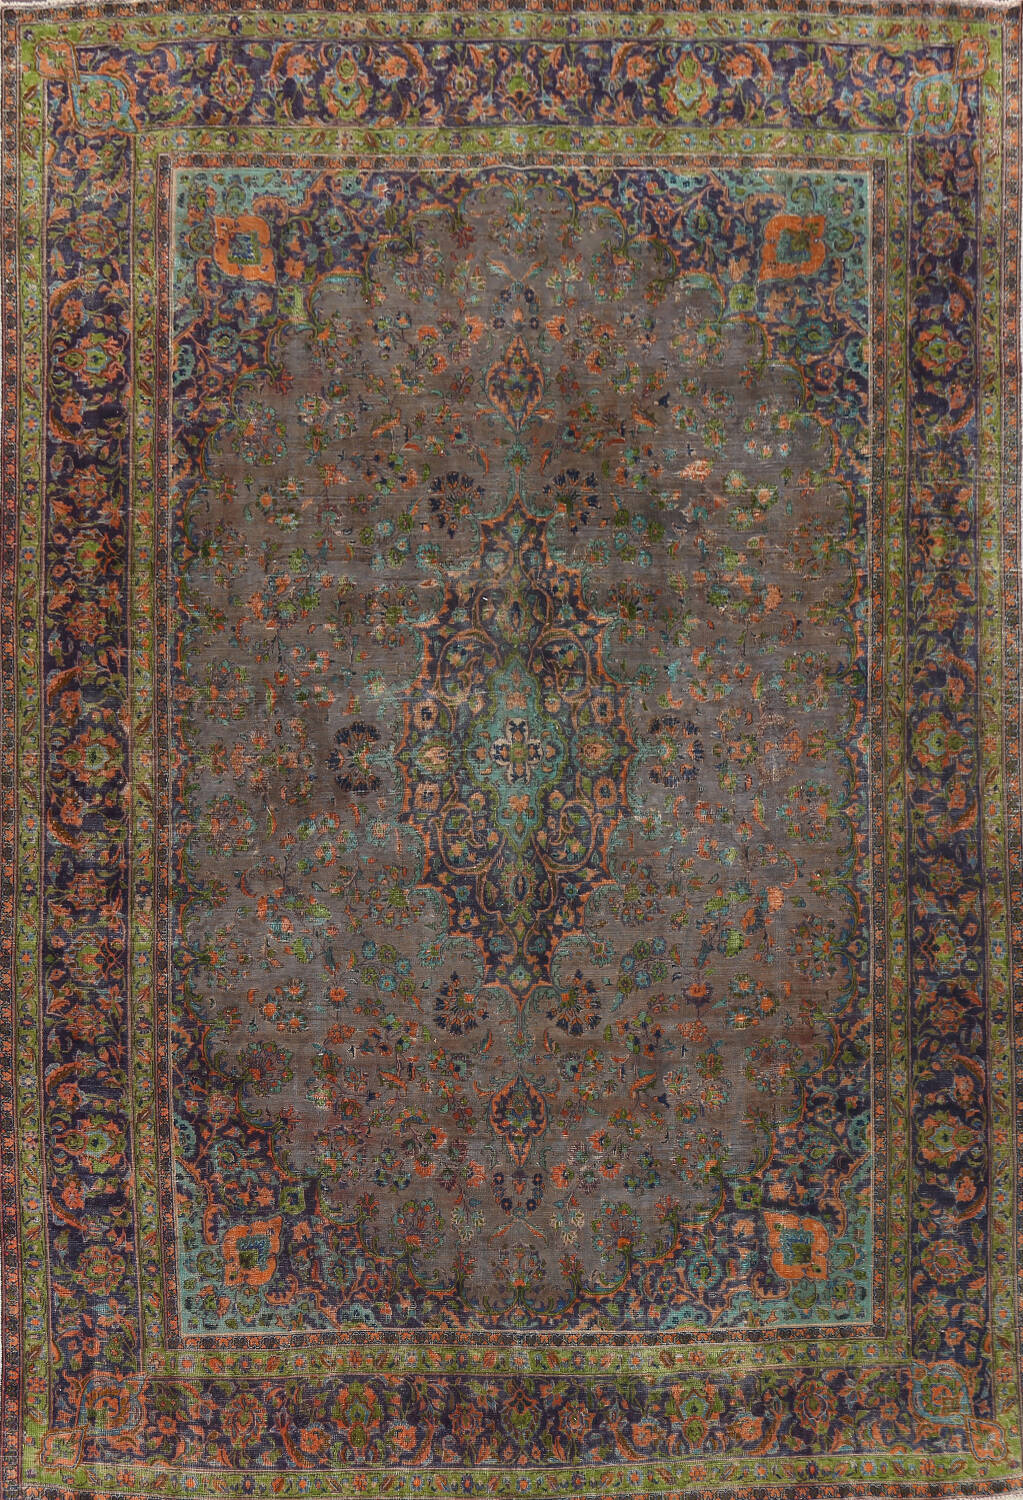 Distressed Over-Dye Kashan Persian Area Rug 10x13 image 1